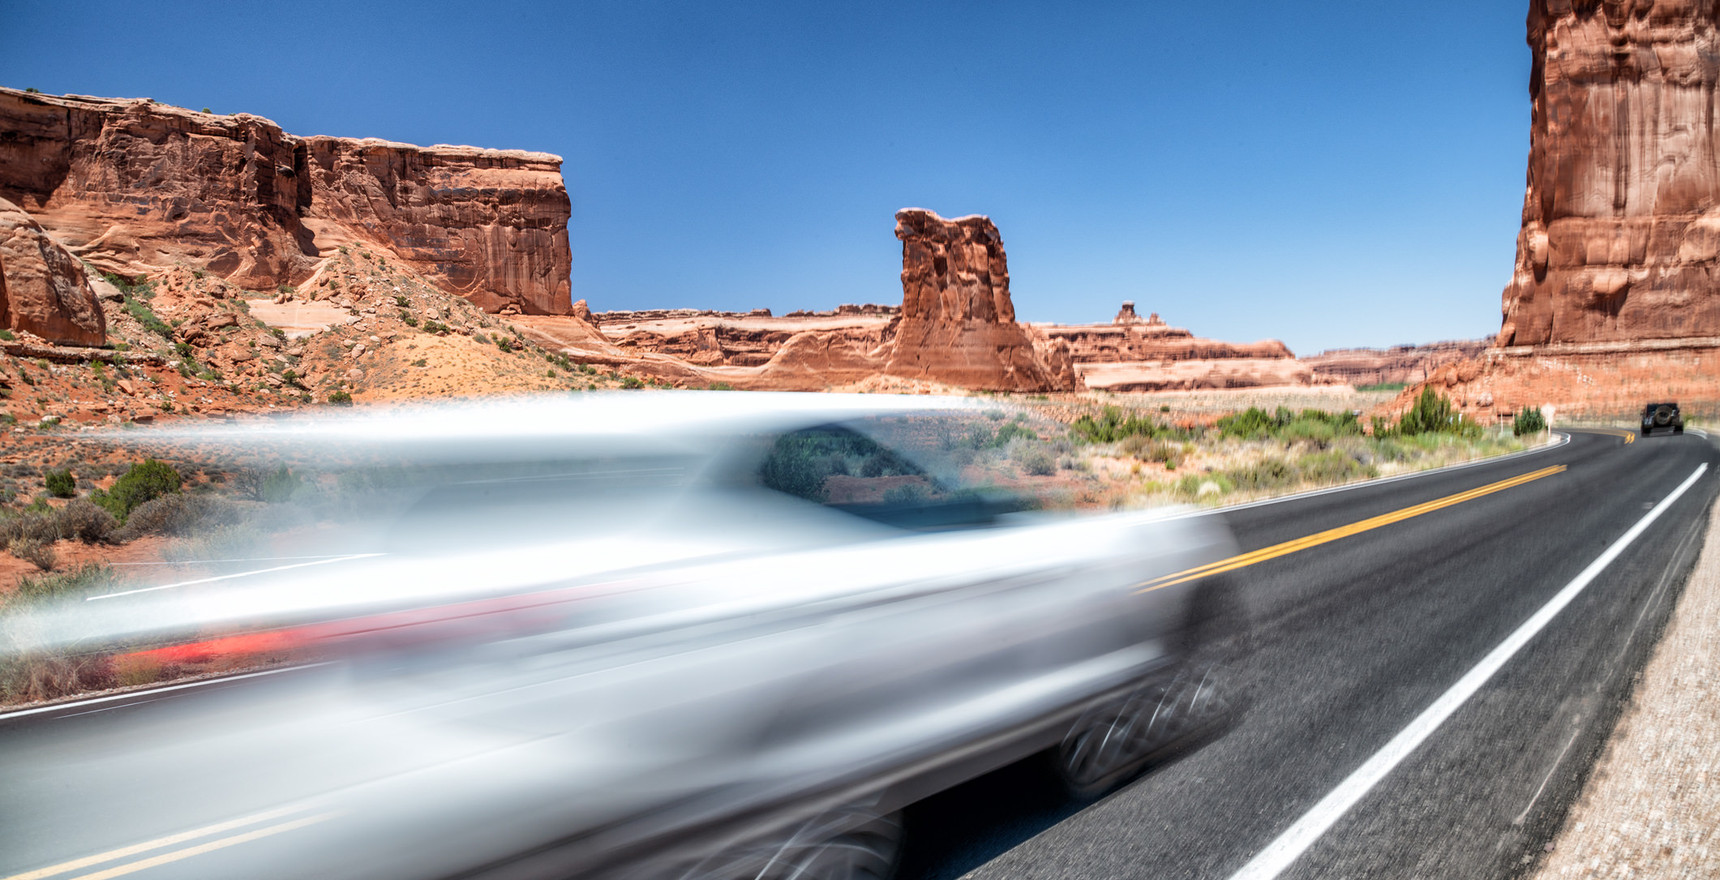 White car speeding up in a National Park, USA